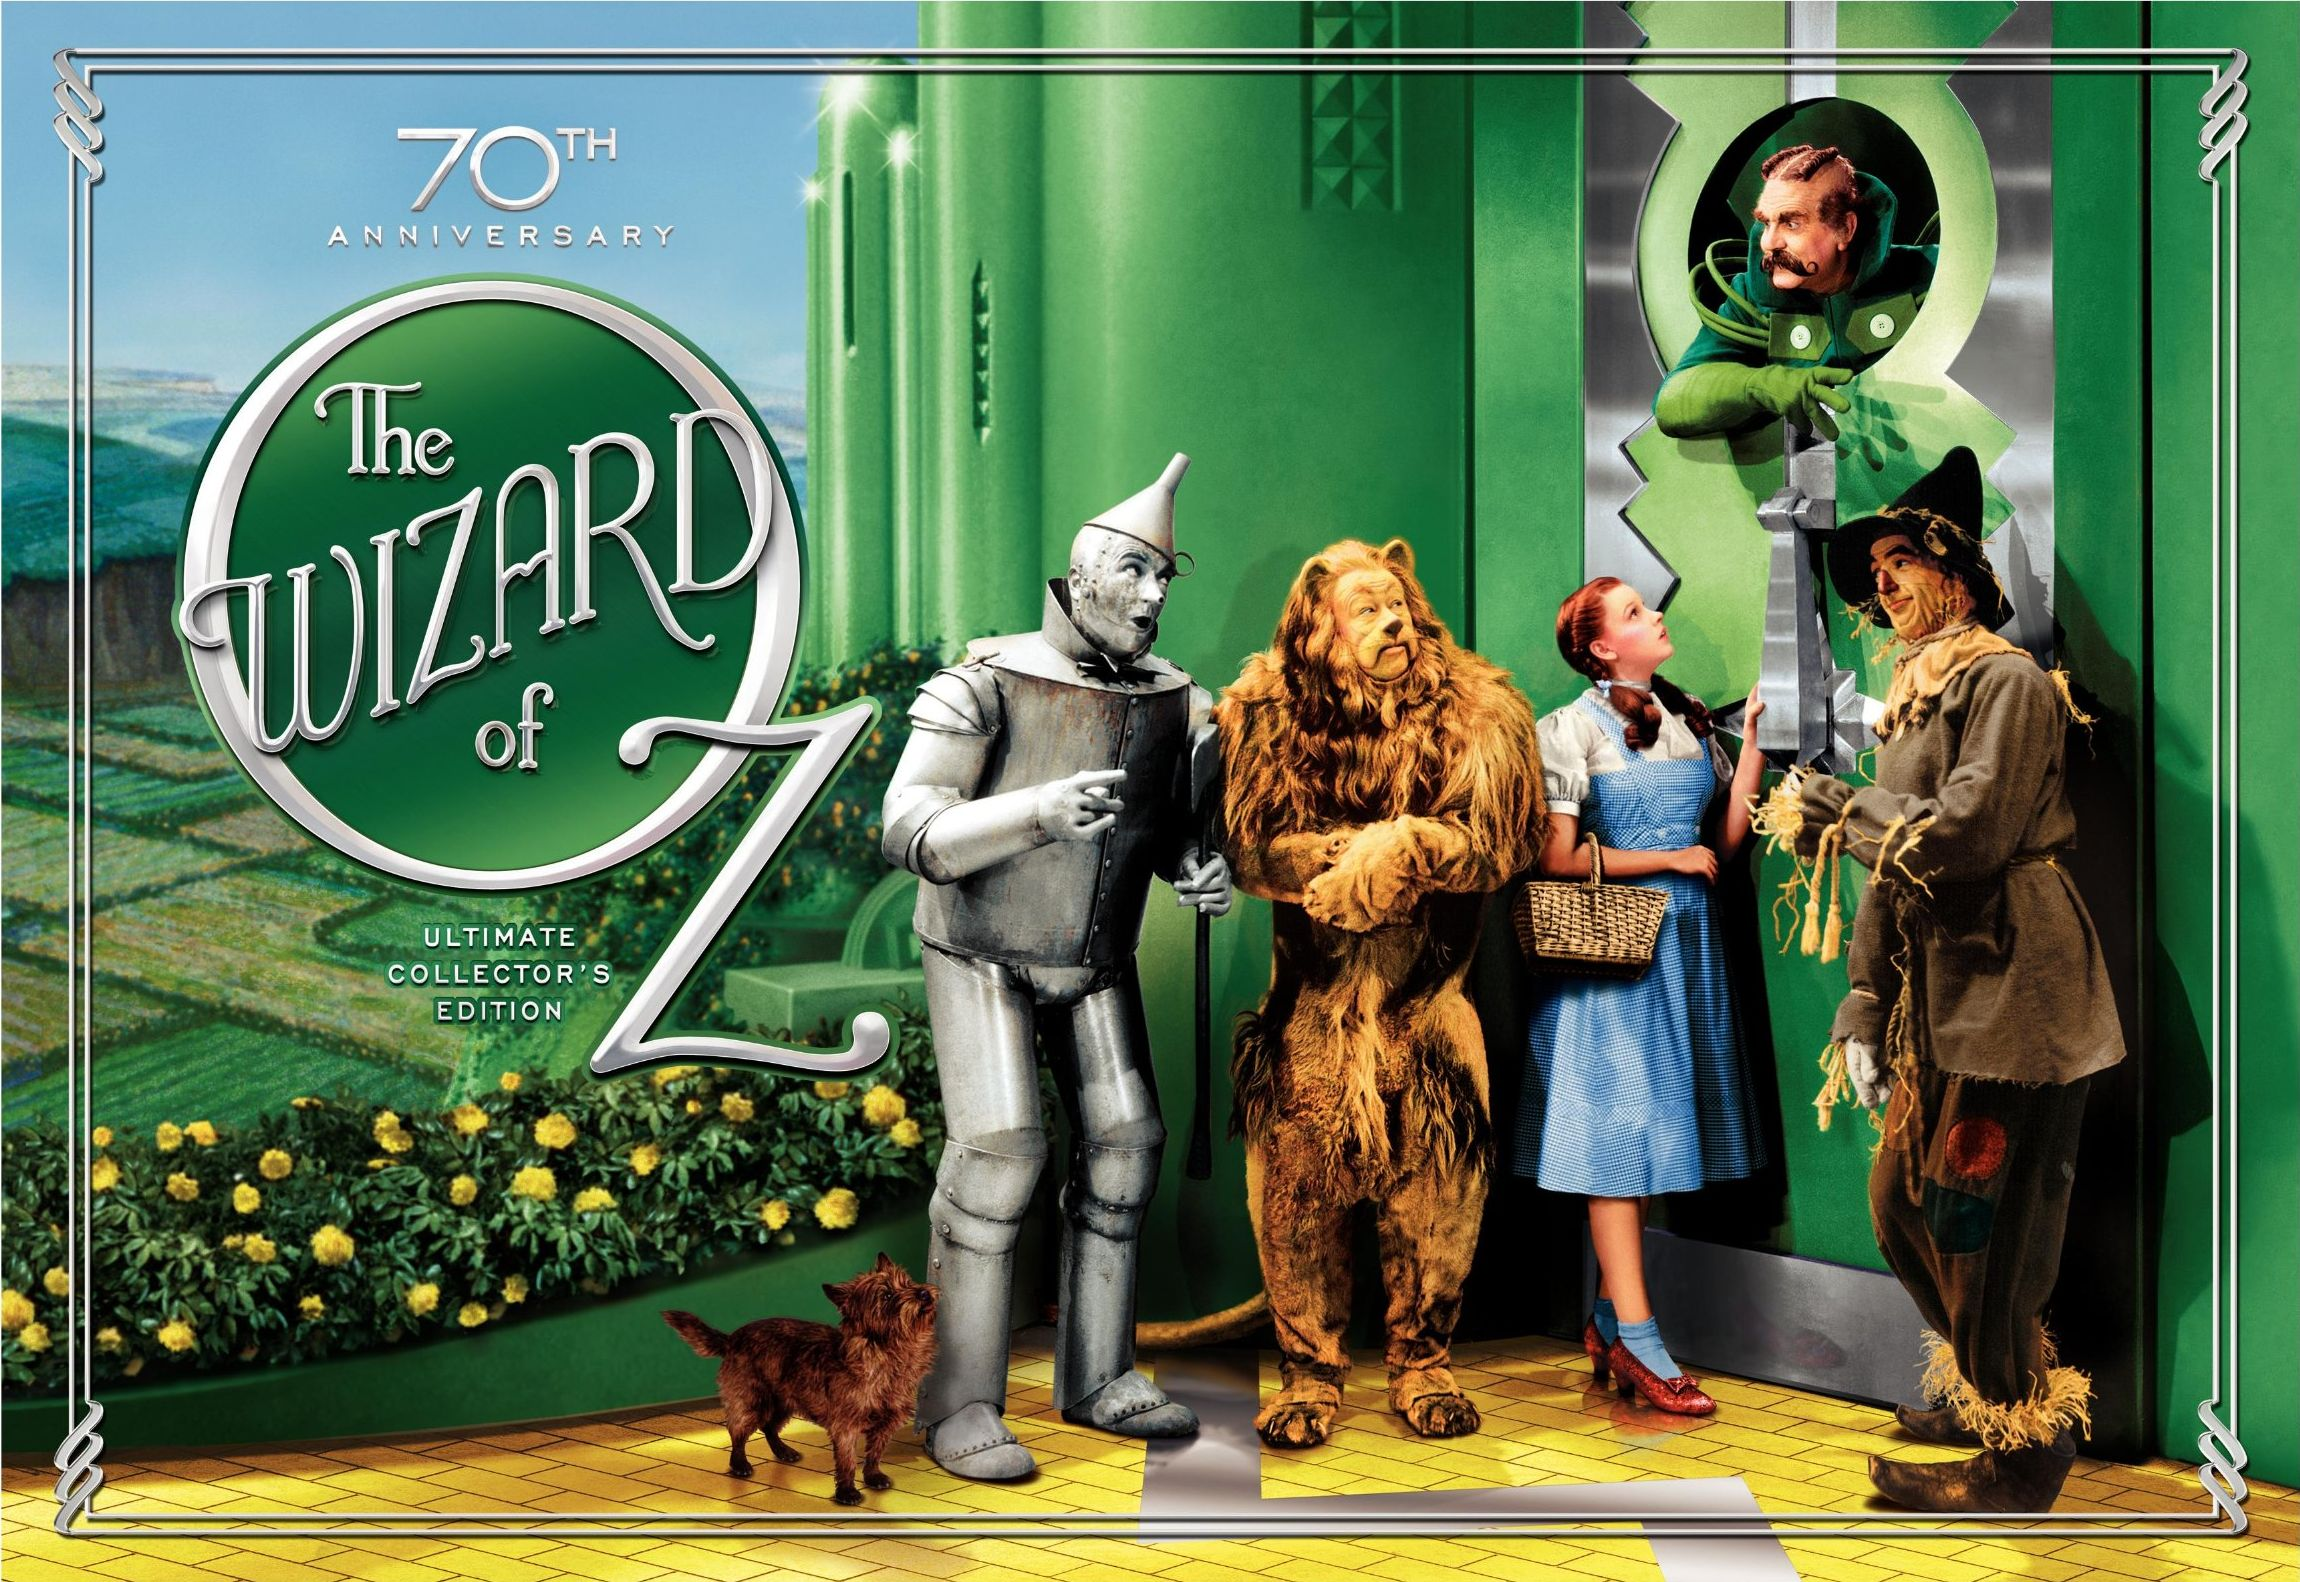 the-wizard-of-oz-dvd-cover-63